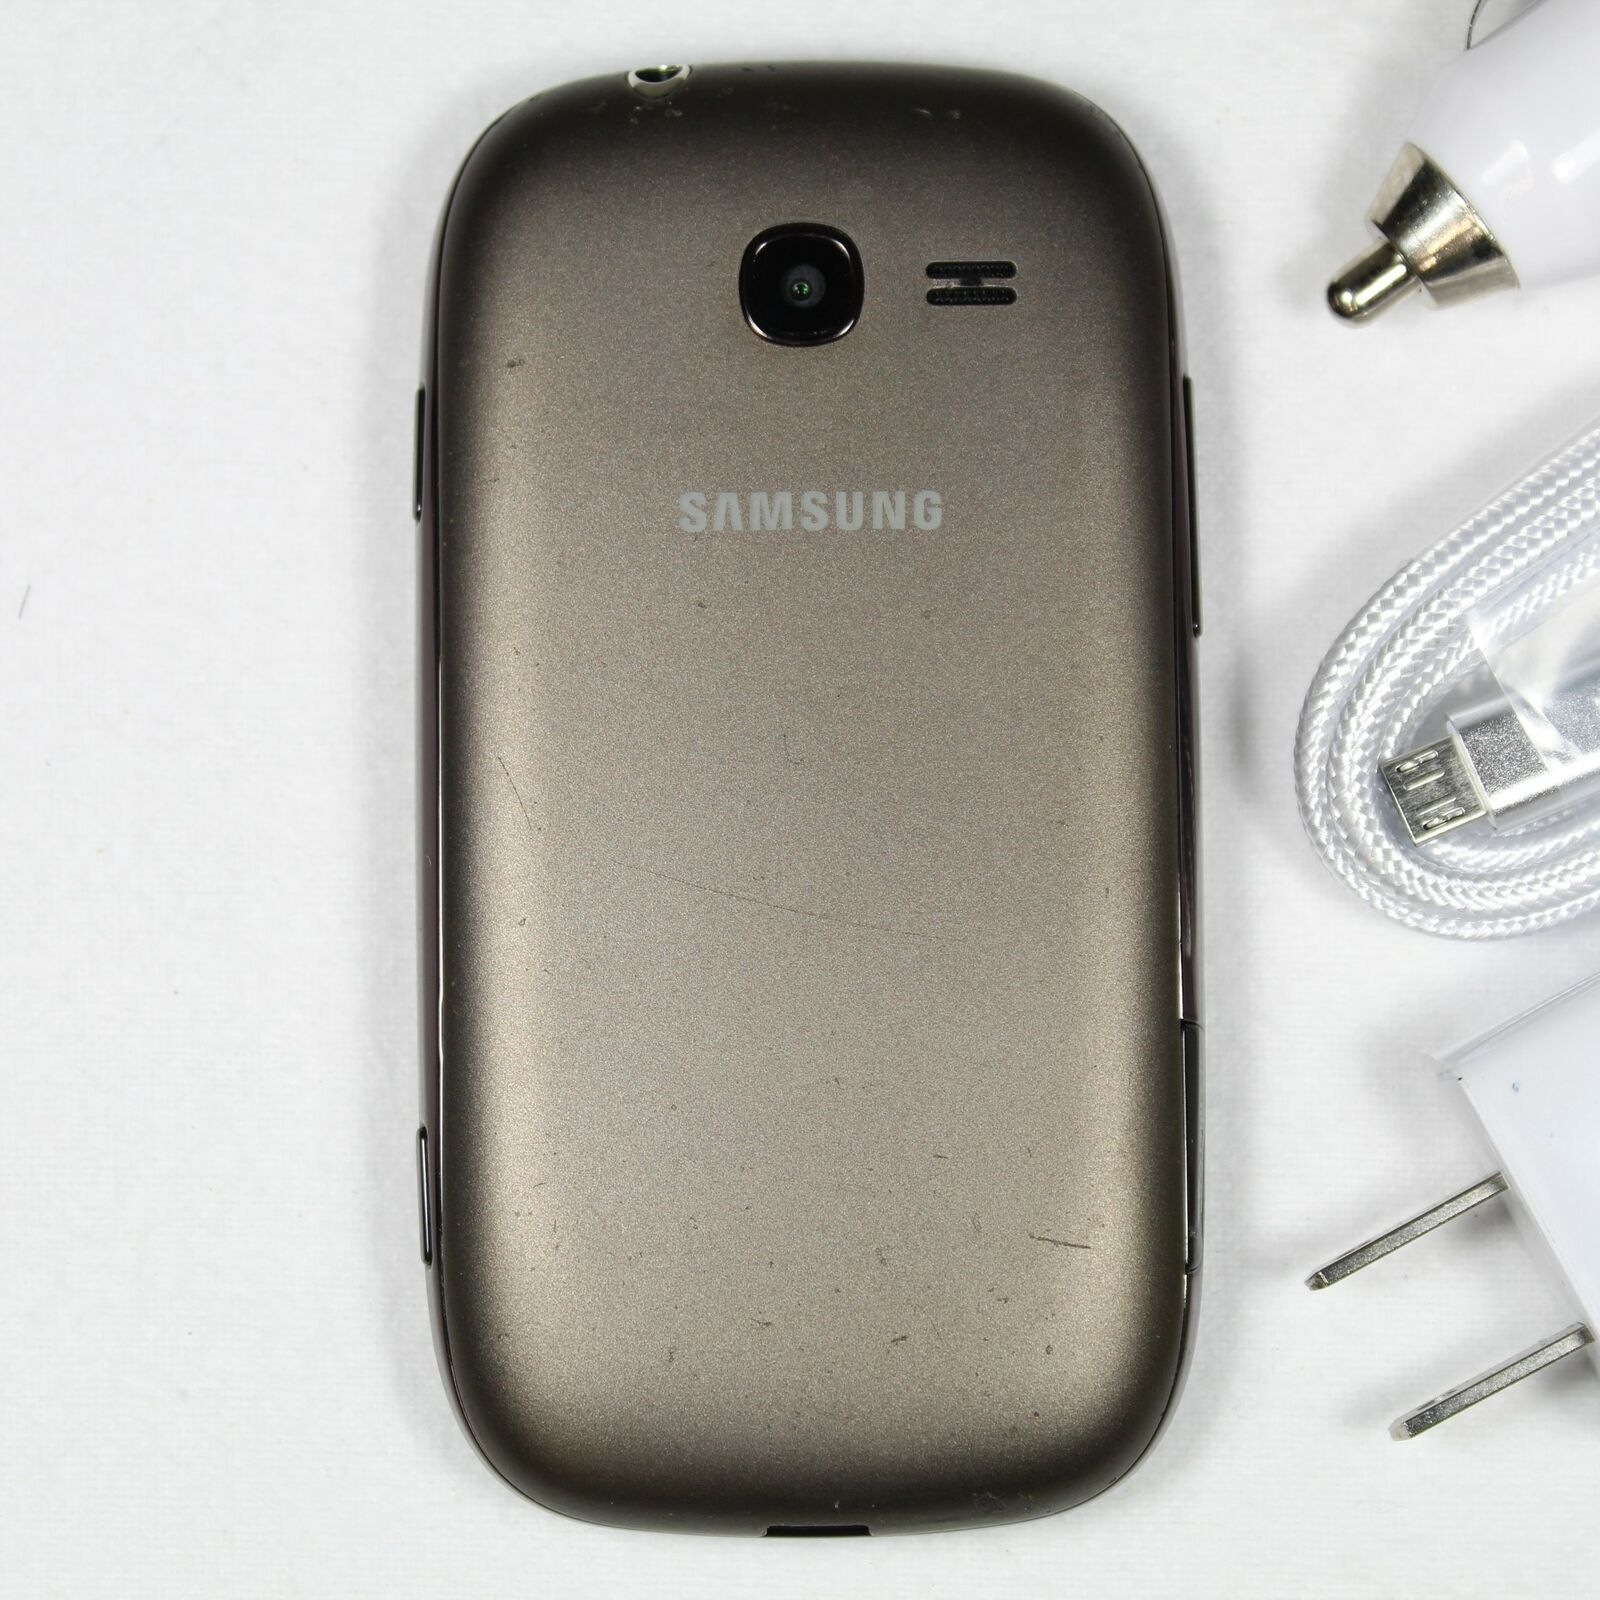 Samsung Gravity Q (T-Mobile) SGH-T289 Slider Phone 3G - fast shipping